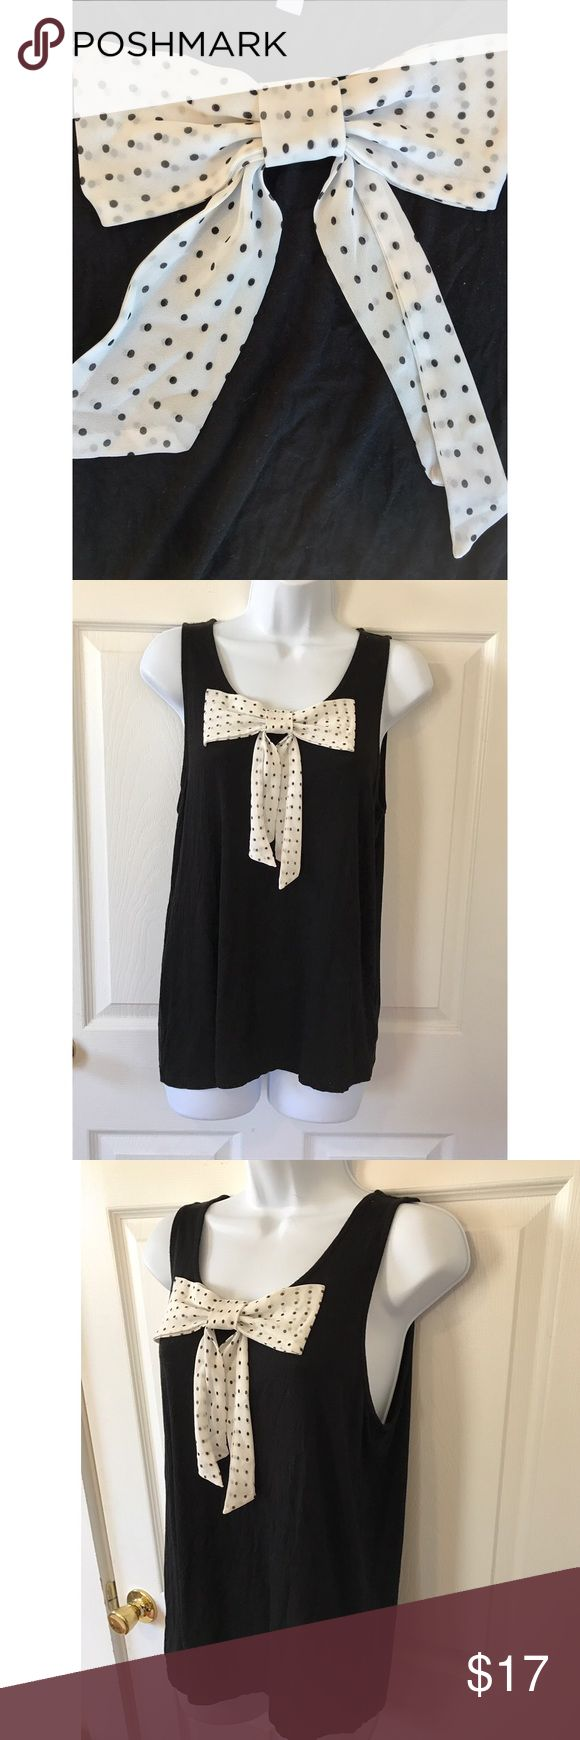 ELLE Cute bow tank top Adorable black tank top adorned with a sheer polka dot bow. Elle Tops Tank Tops